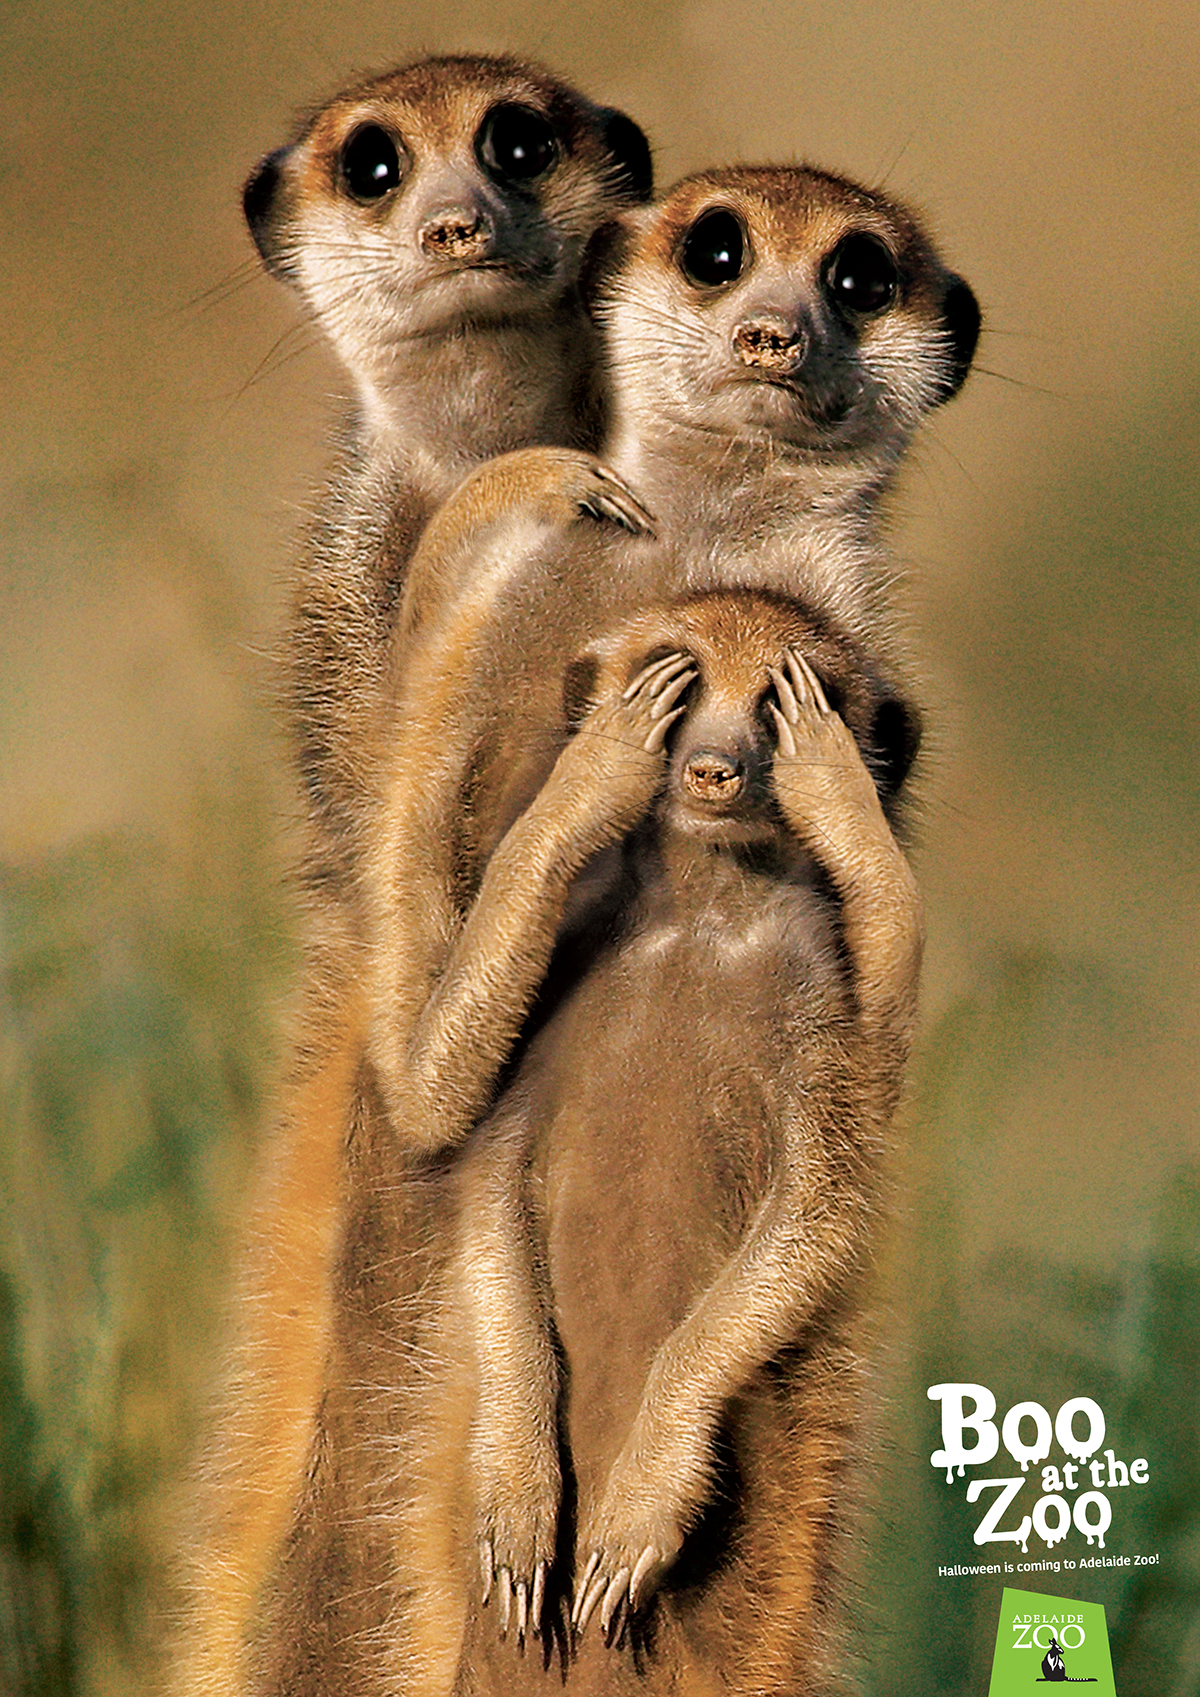 Zoos SA_Boo at the Zoo poster_Meerkat 1200px